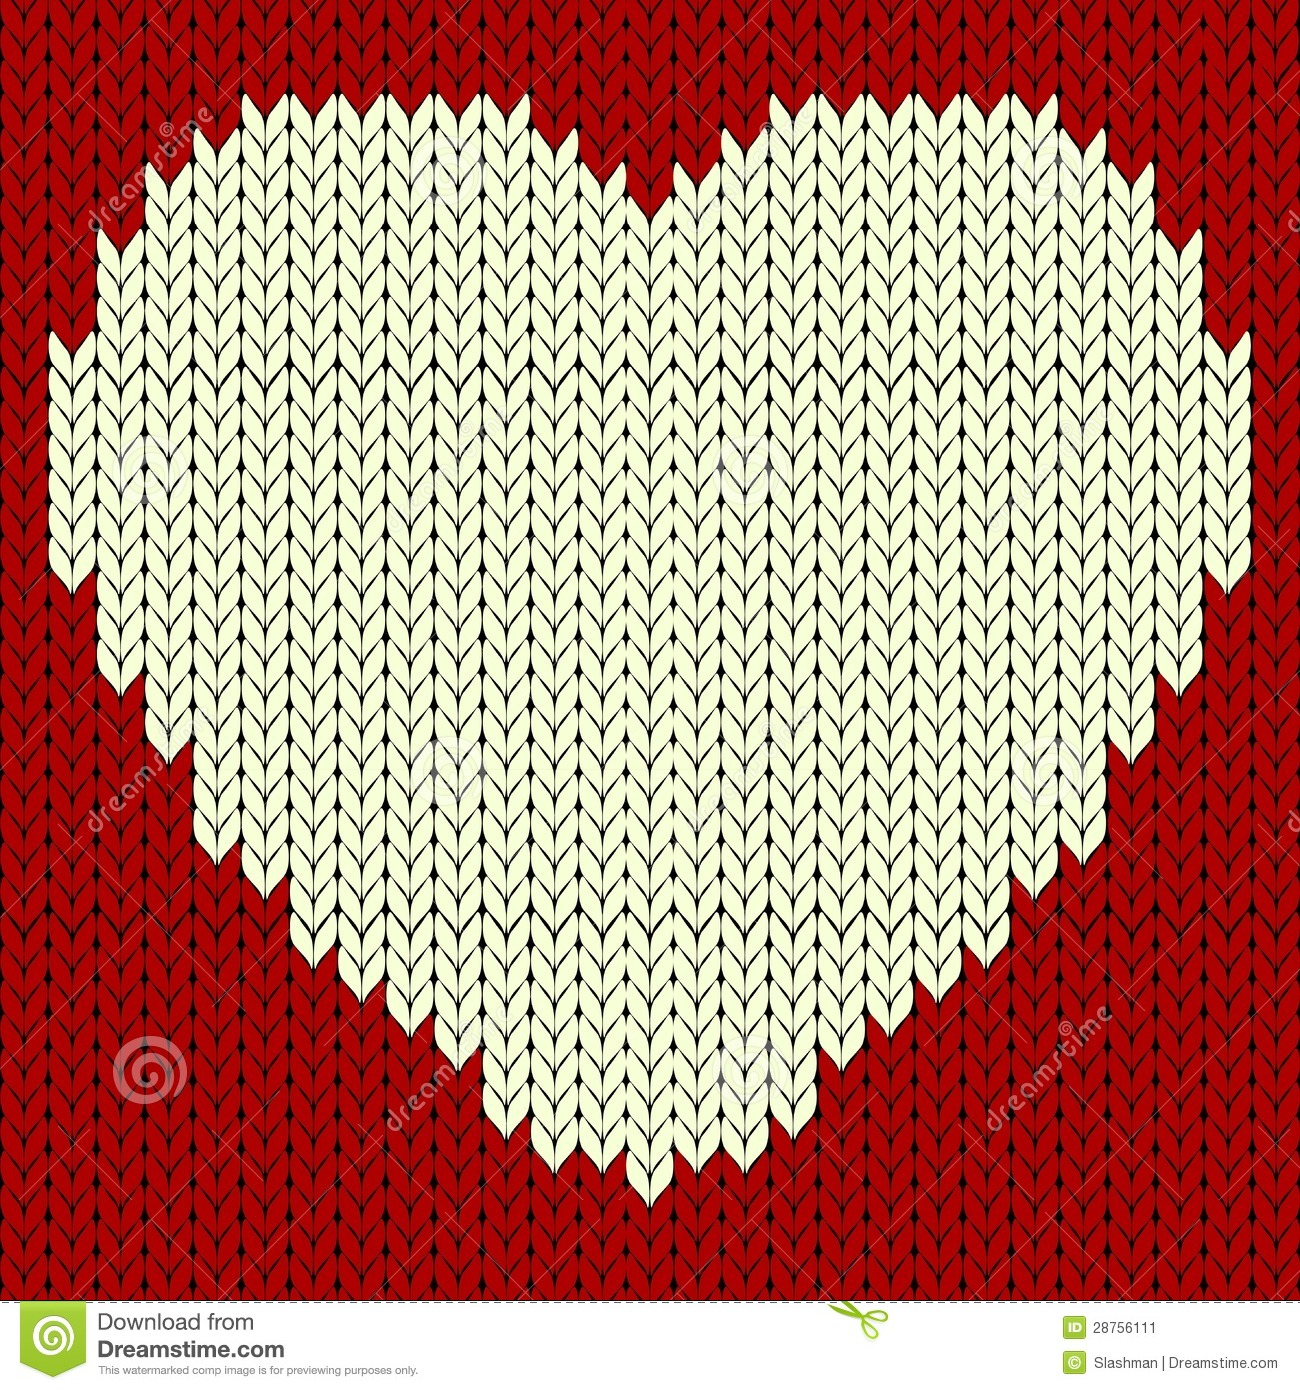 Knitting Pattern Vector Download : Knitted Vector Pattern With Red Heart Stock Image - Image ...